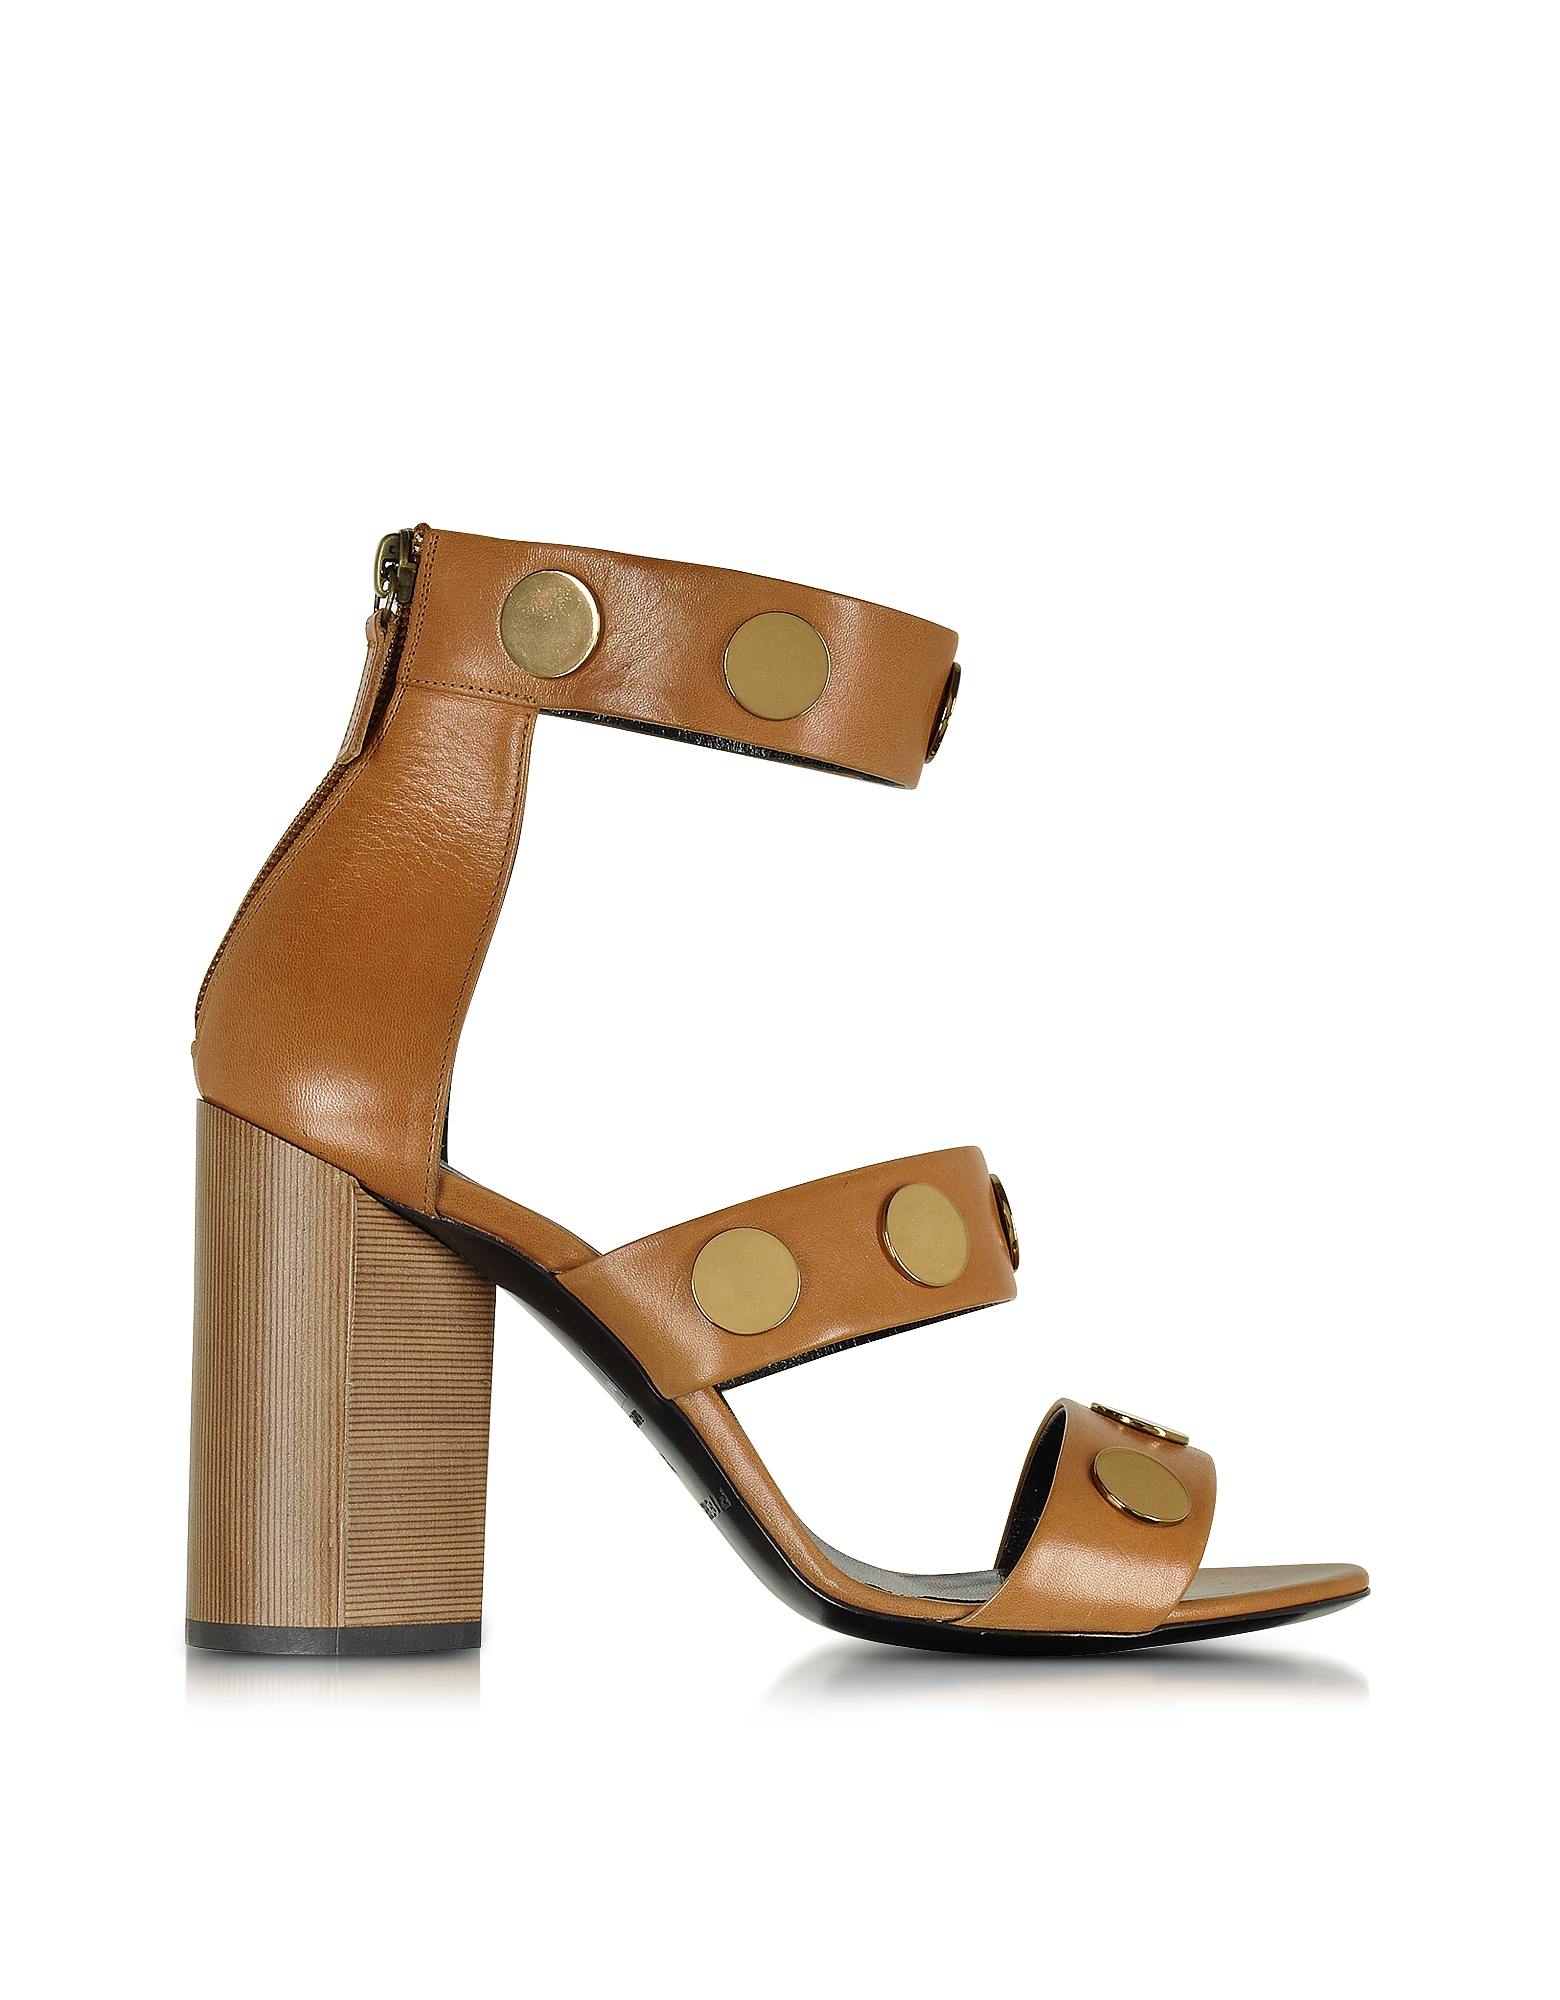 Pierre Hardy Shoes, Penny Camel Leather High Heel Sandal